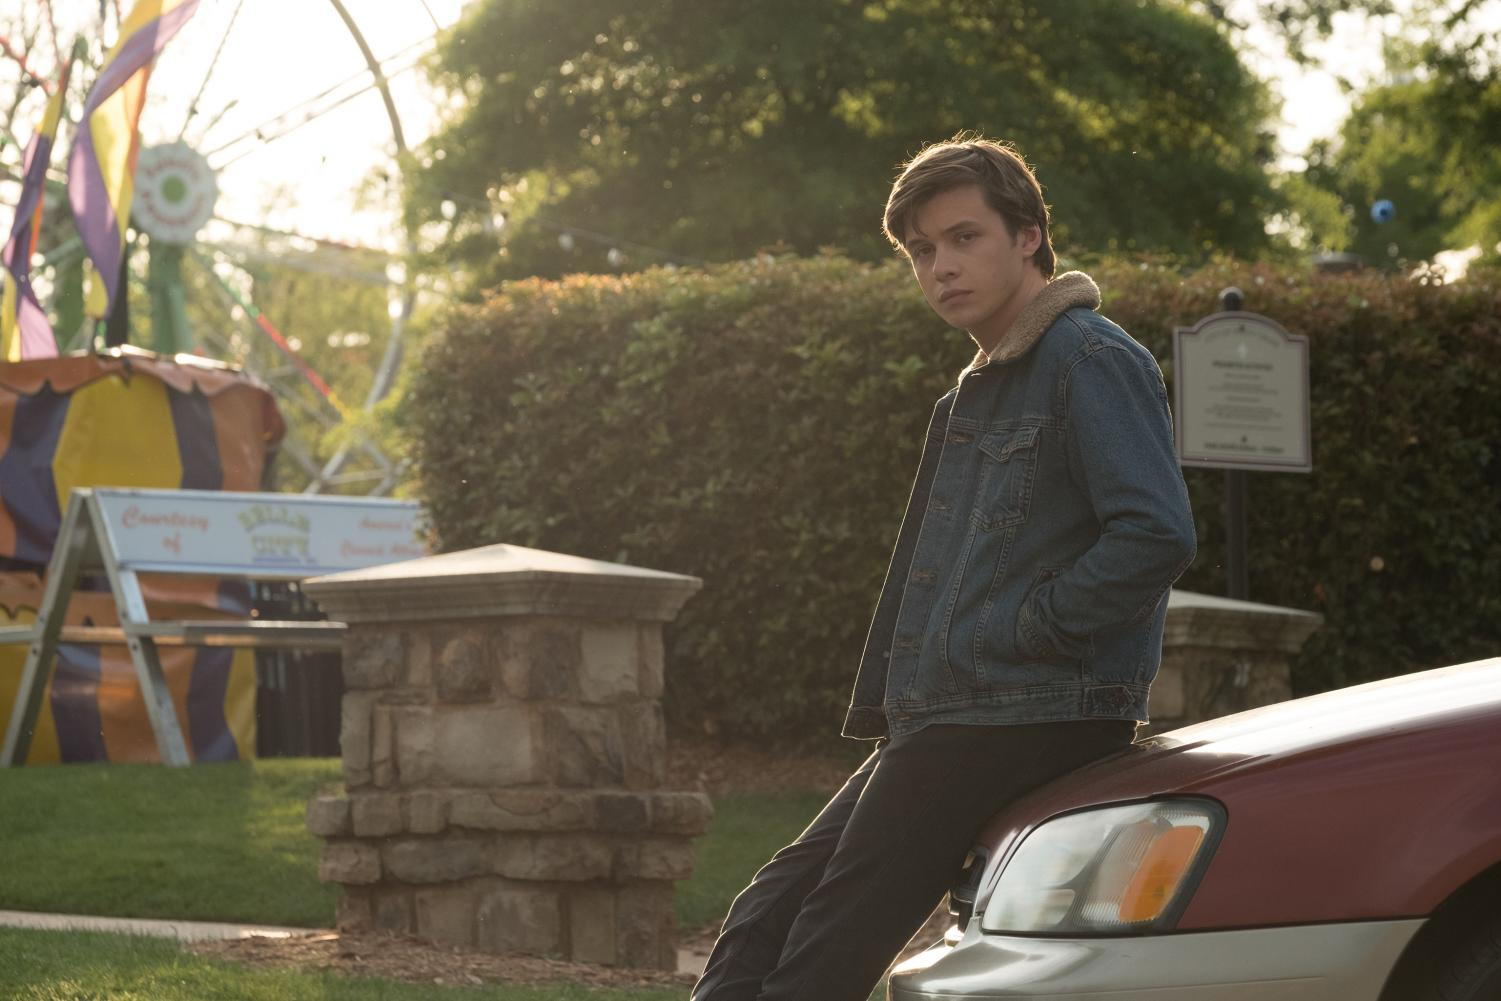 Nick Robinson in Love, Simon. Used with Permission. Provided by 20th Century Fox